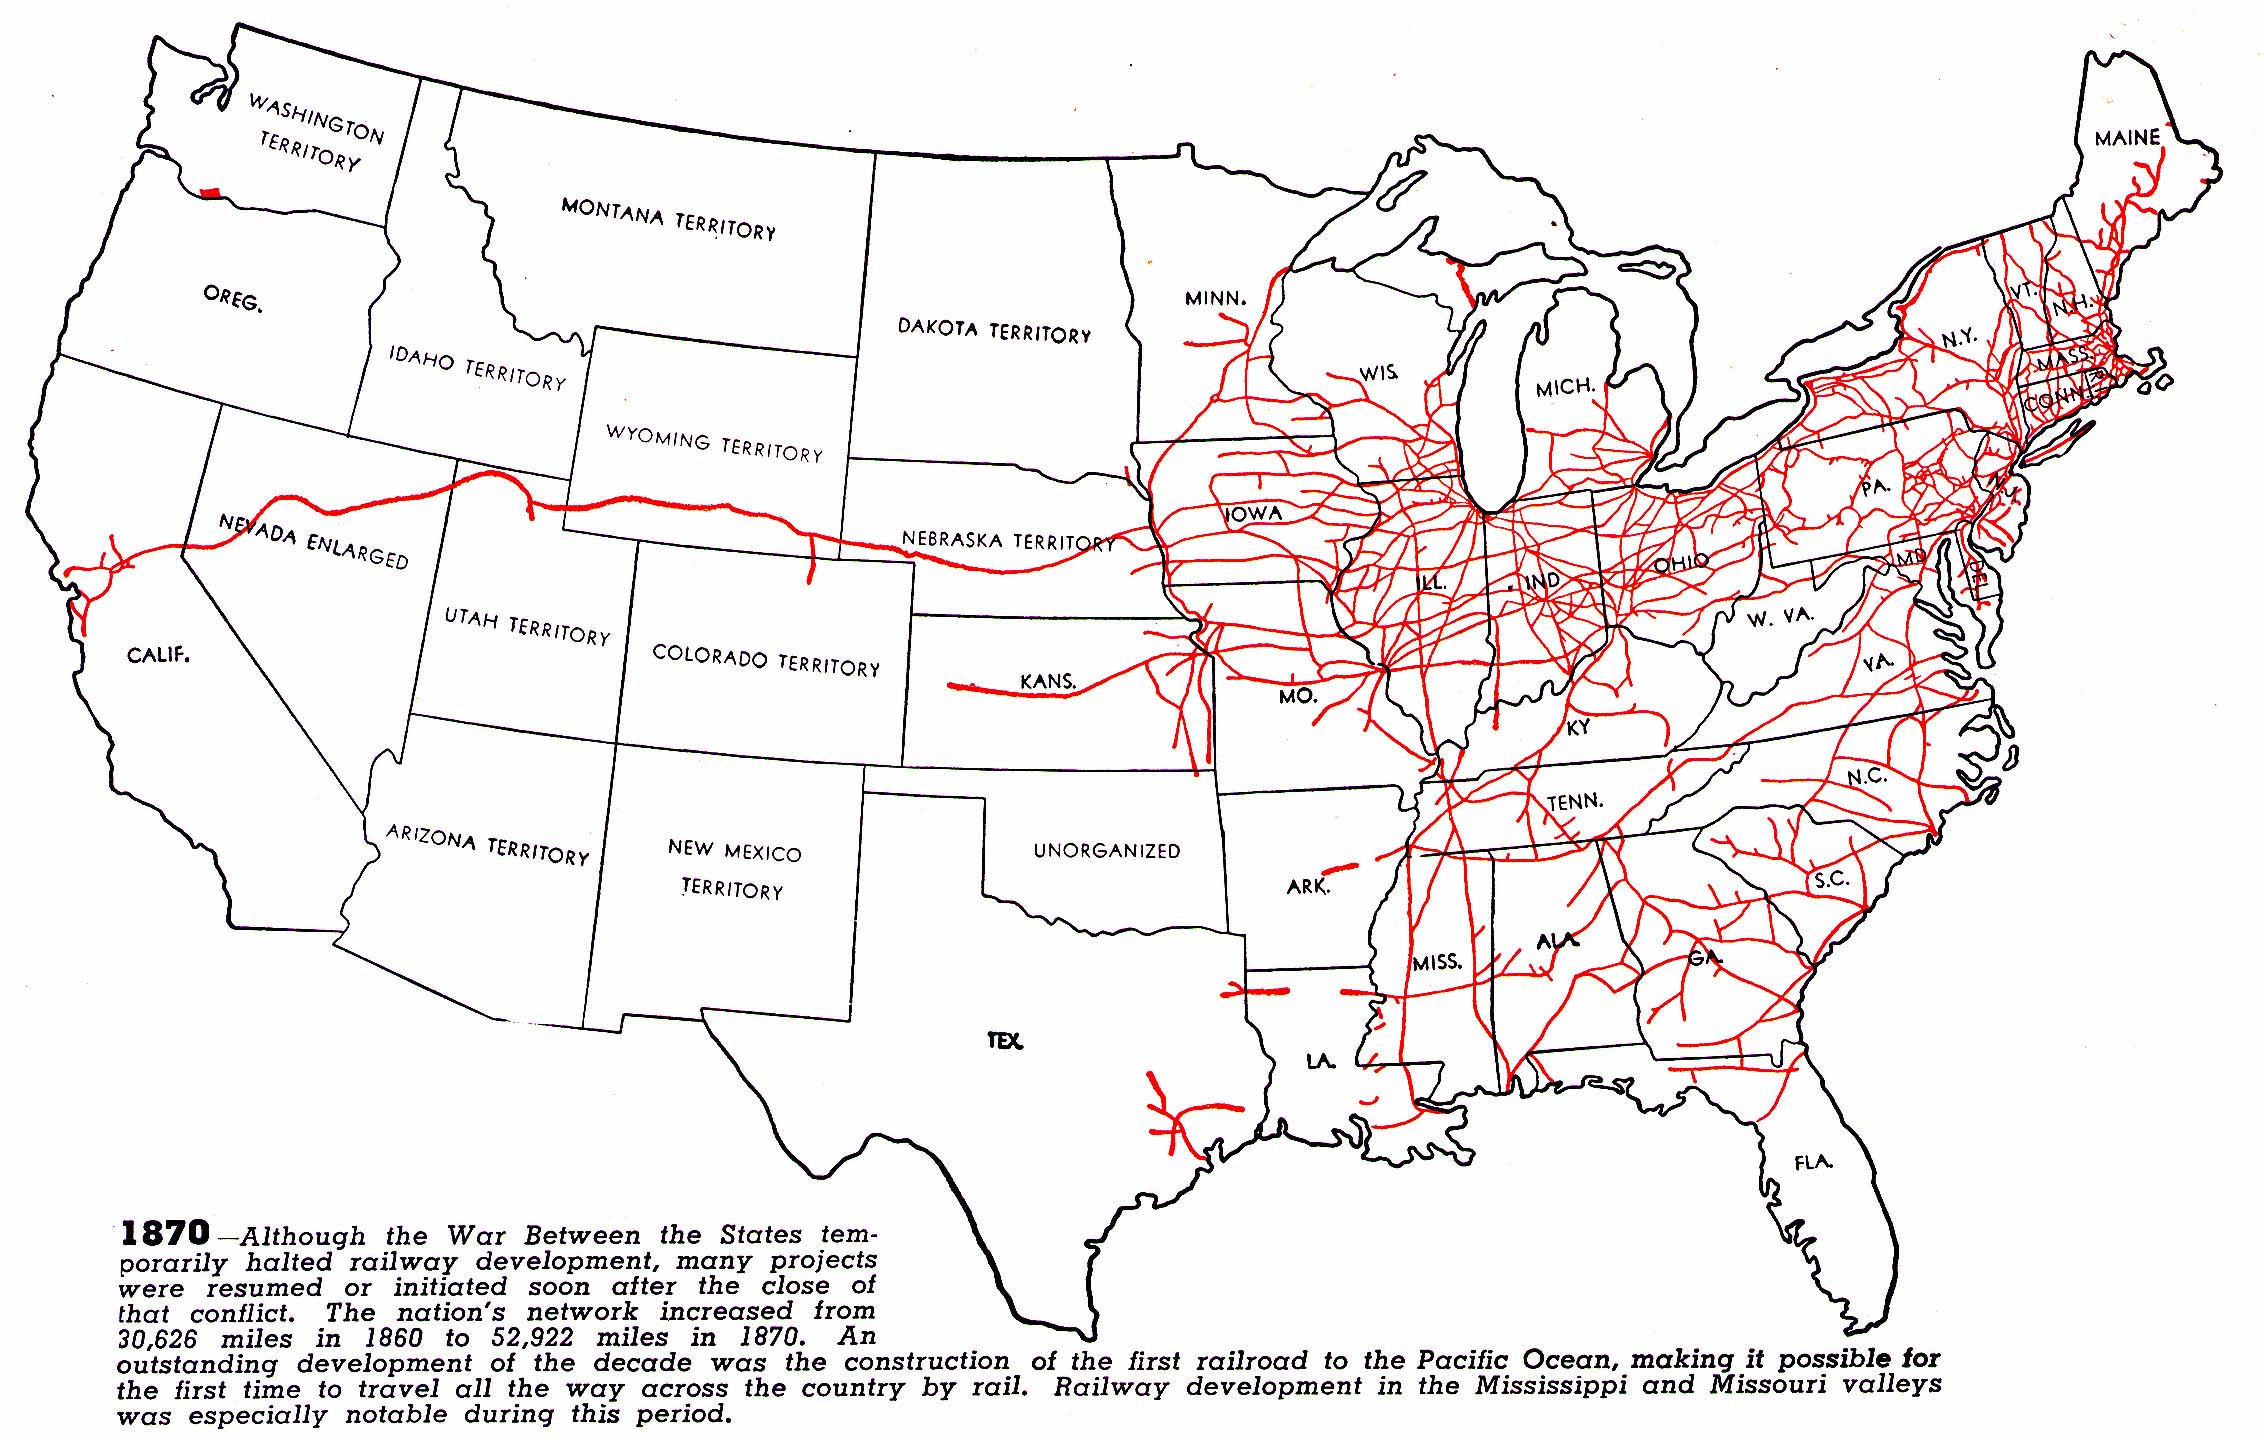 RAILROADNET View Topic Maps Showing Growth And Decline Of - Map of us rail network